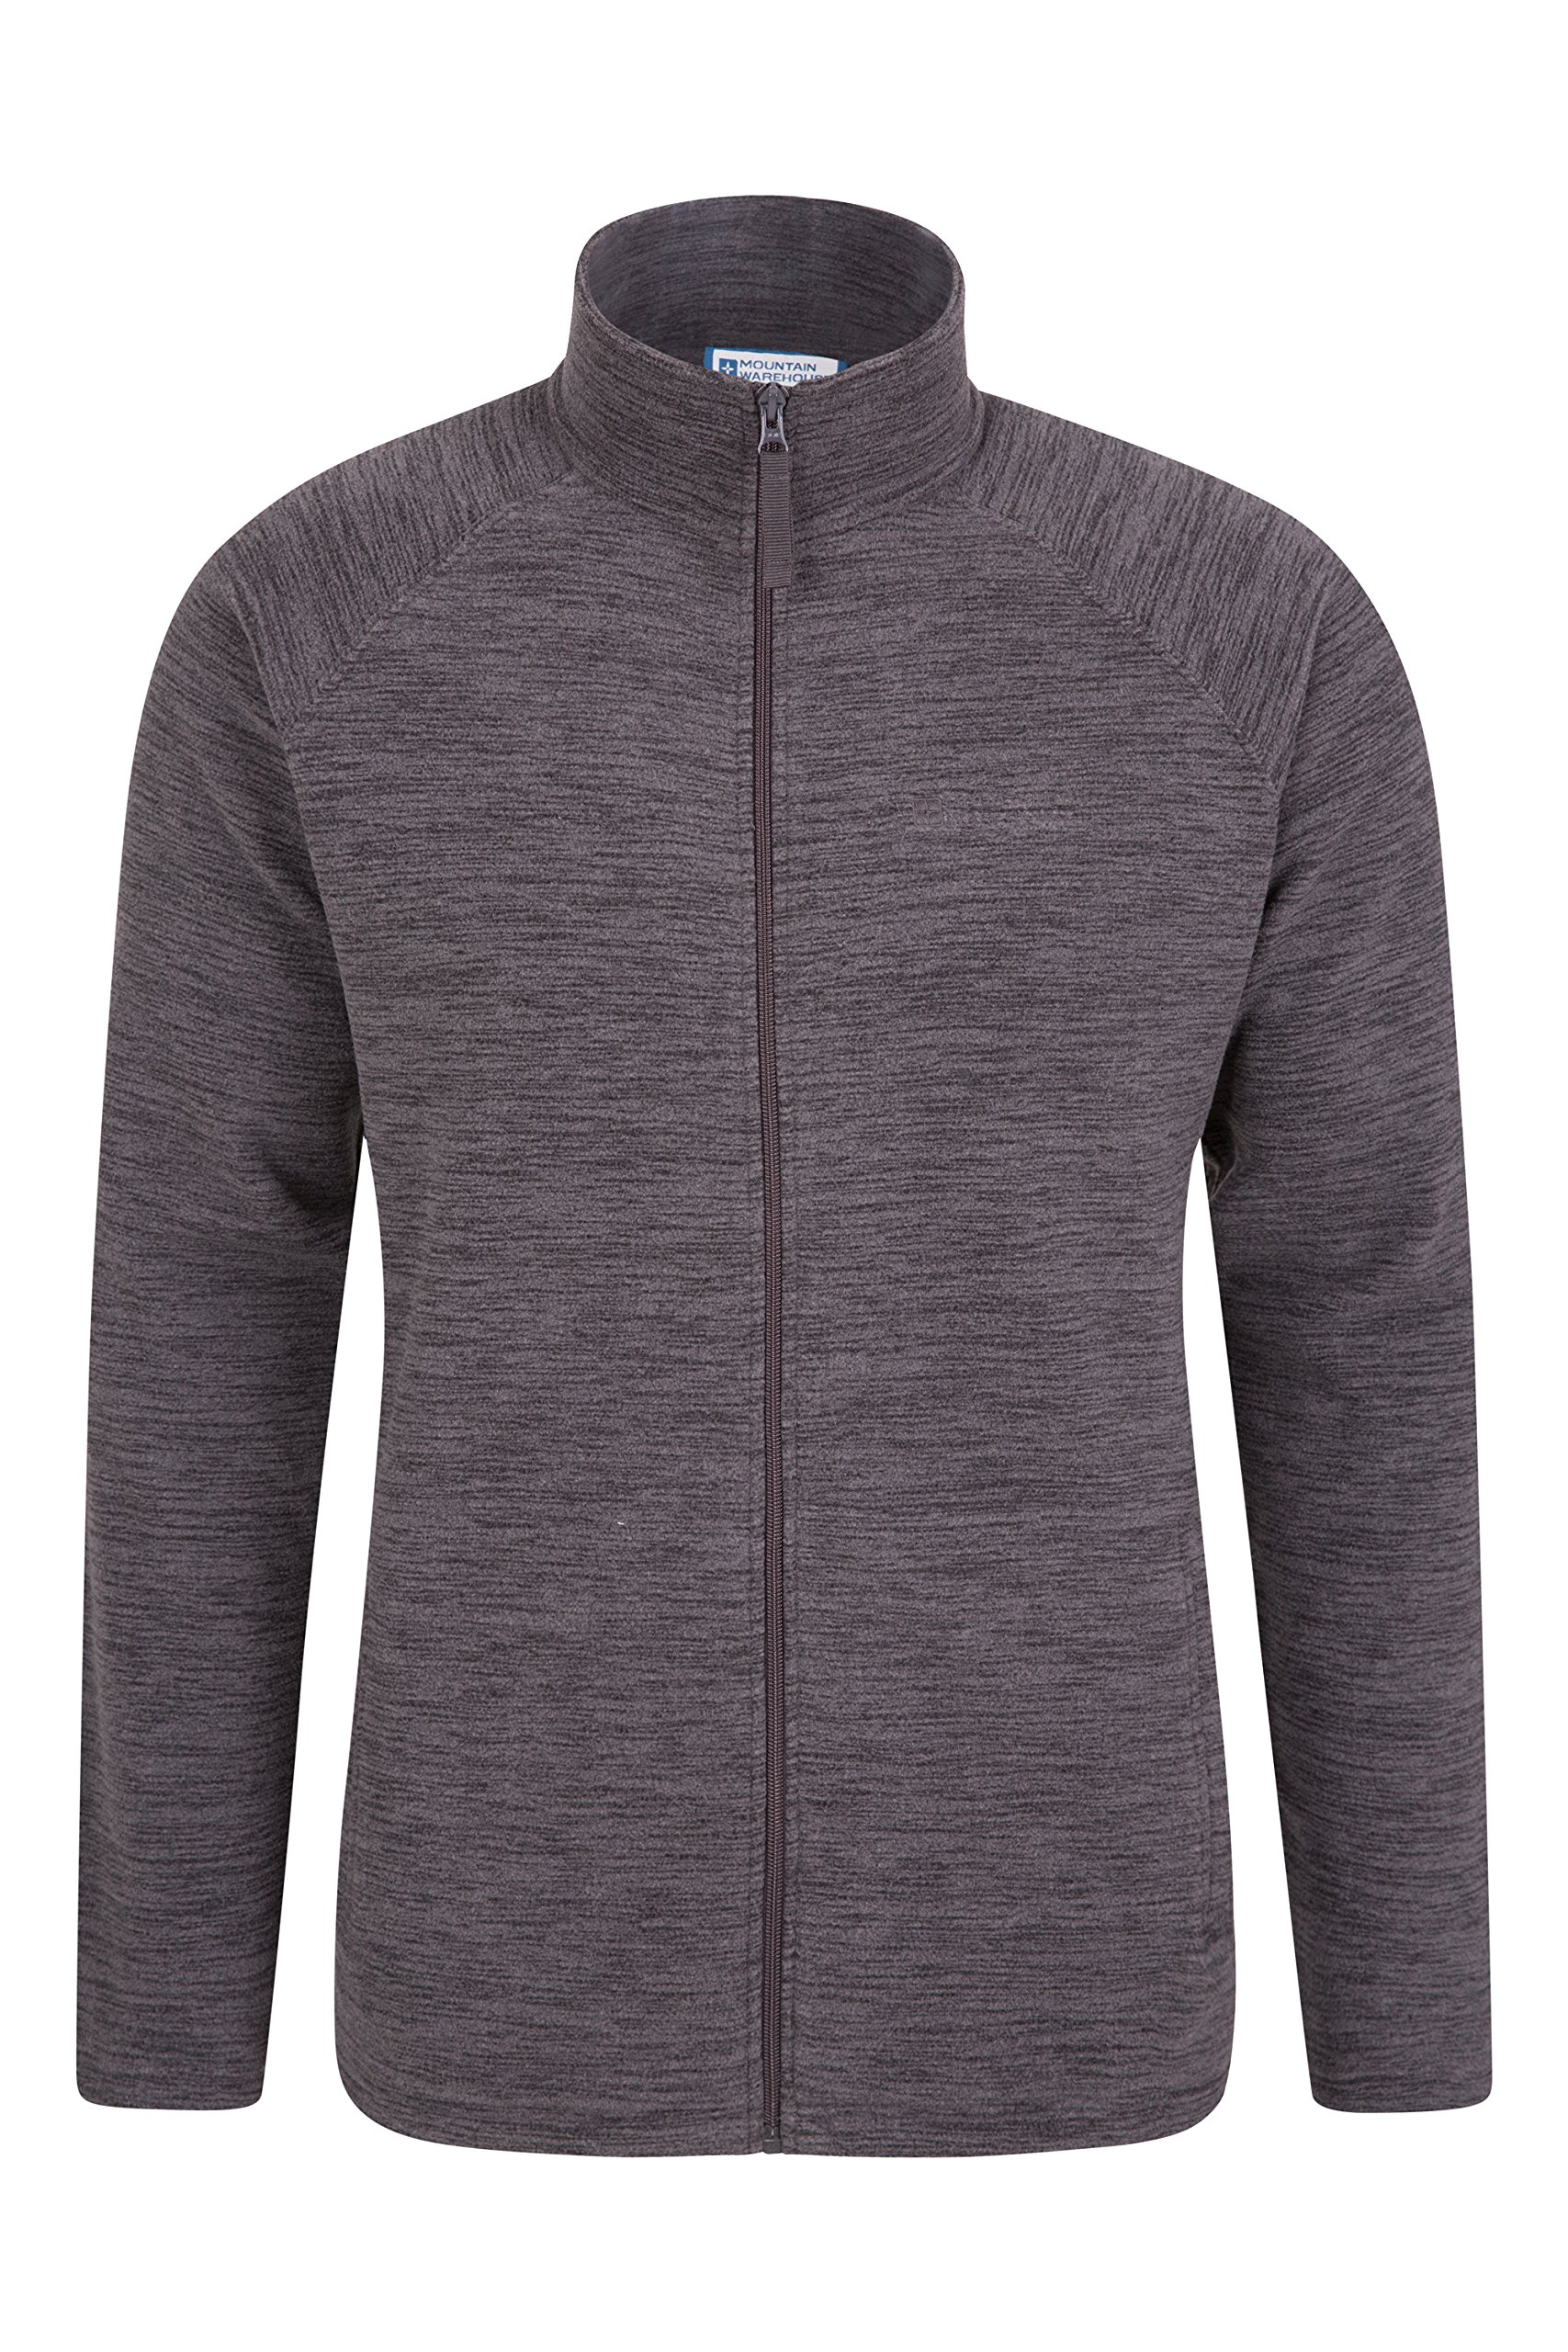 Mountain Warehouse Snowdon Mens Full Zip Fleece - Midlayer Pullover, Breathable Jacket, Soft Outerwear, Smooth Fleece Top - for Winter, Travelling 1